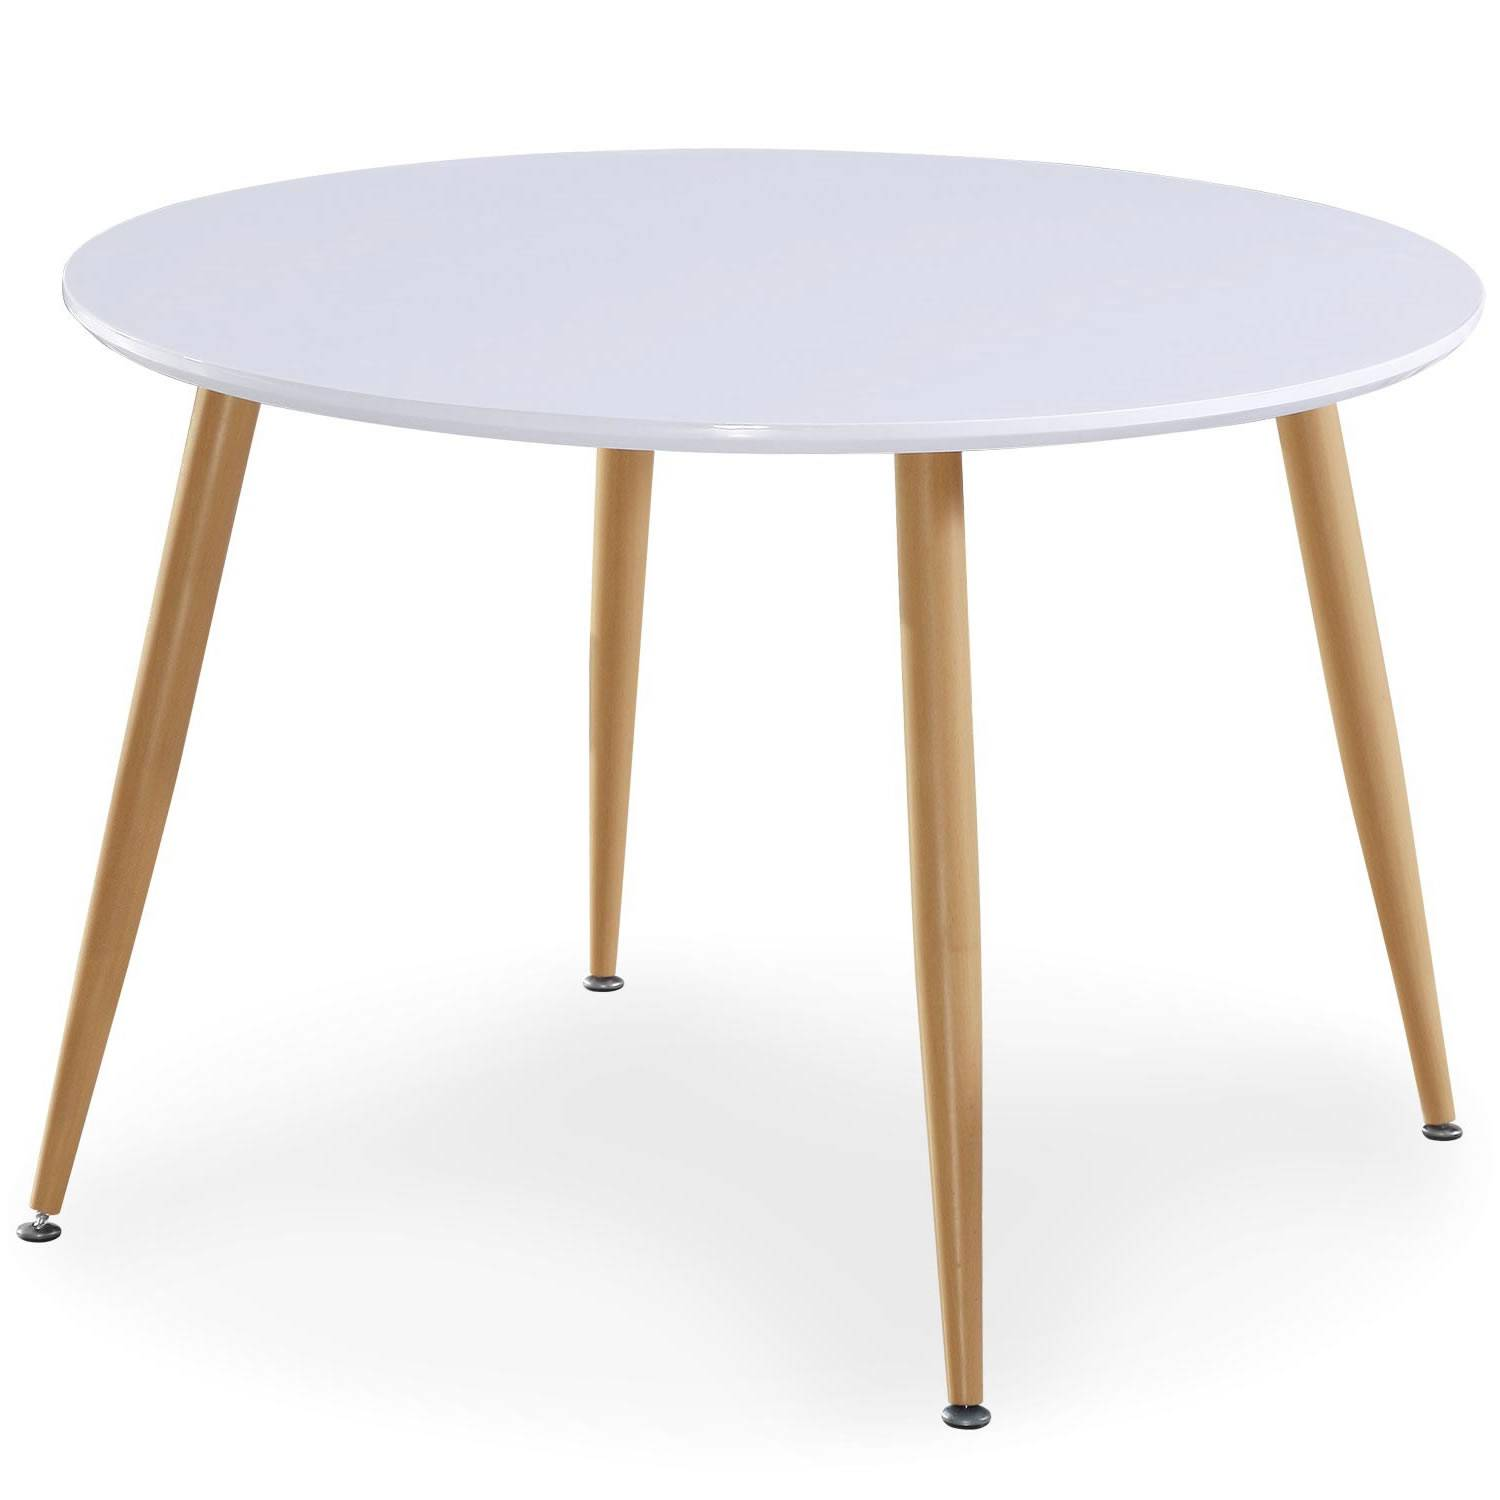 table ronde bois blanc avec rallonge. Black Bedroom Furniture Sets. Home Design Ideas